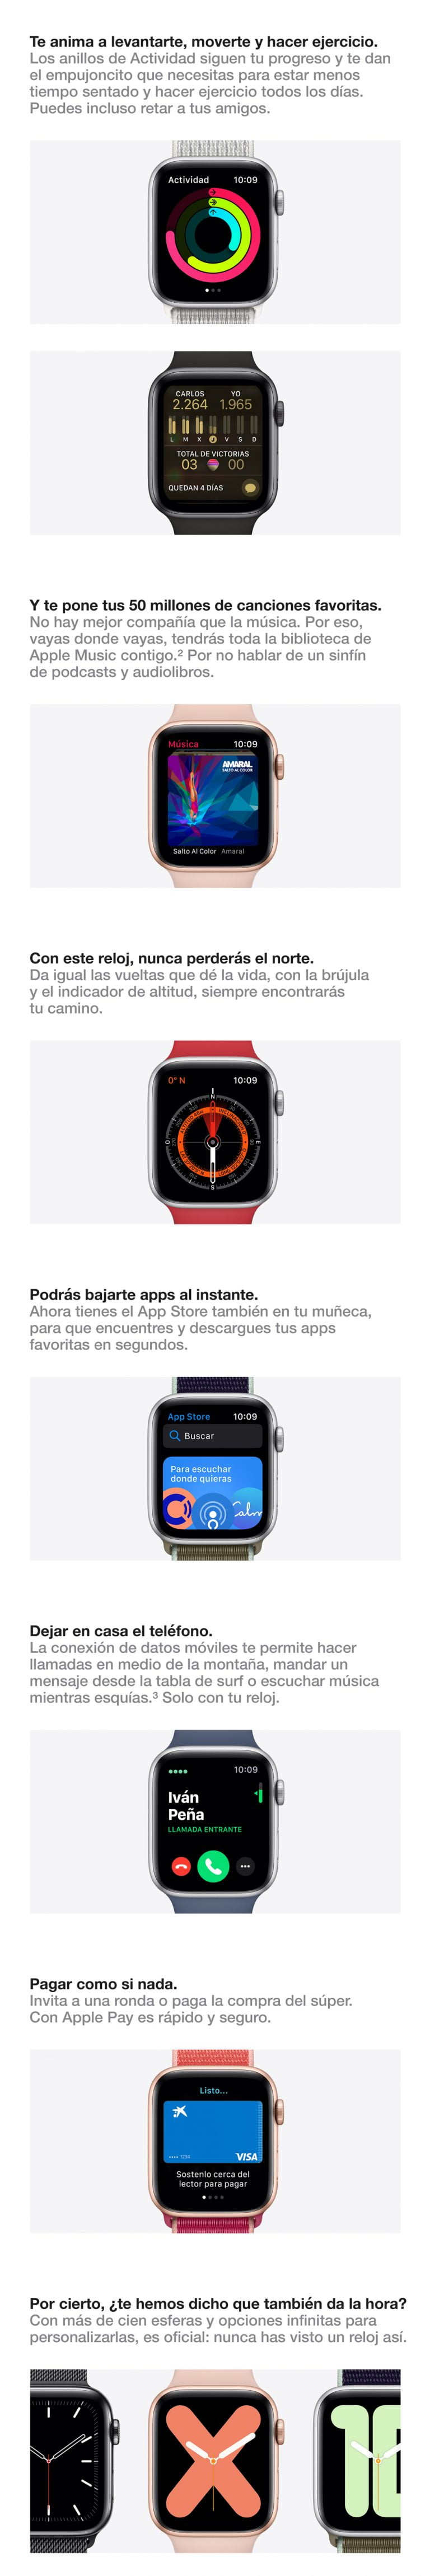 iPhone 7, Apple Watch Series 2 y AirPods: primer contacto